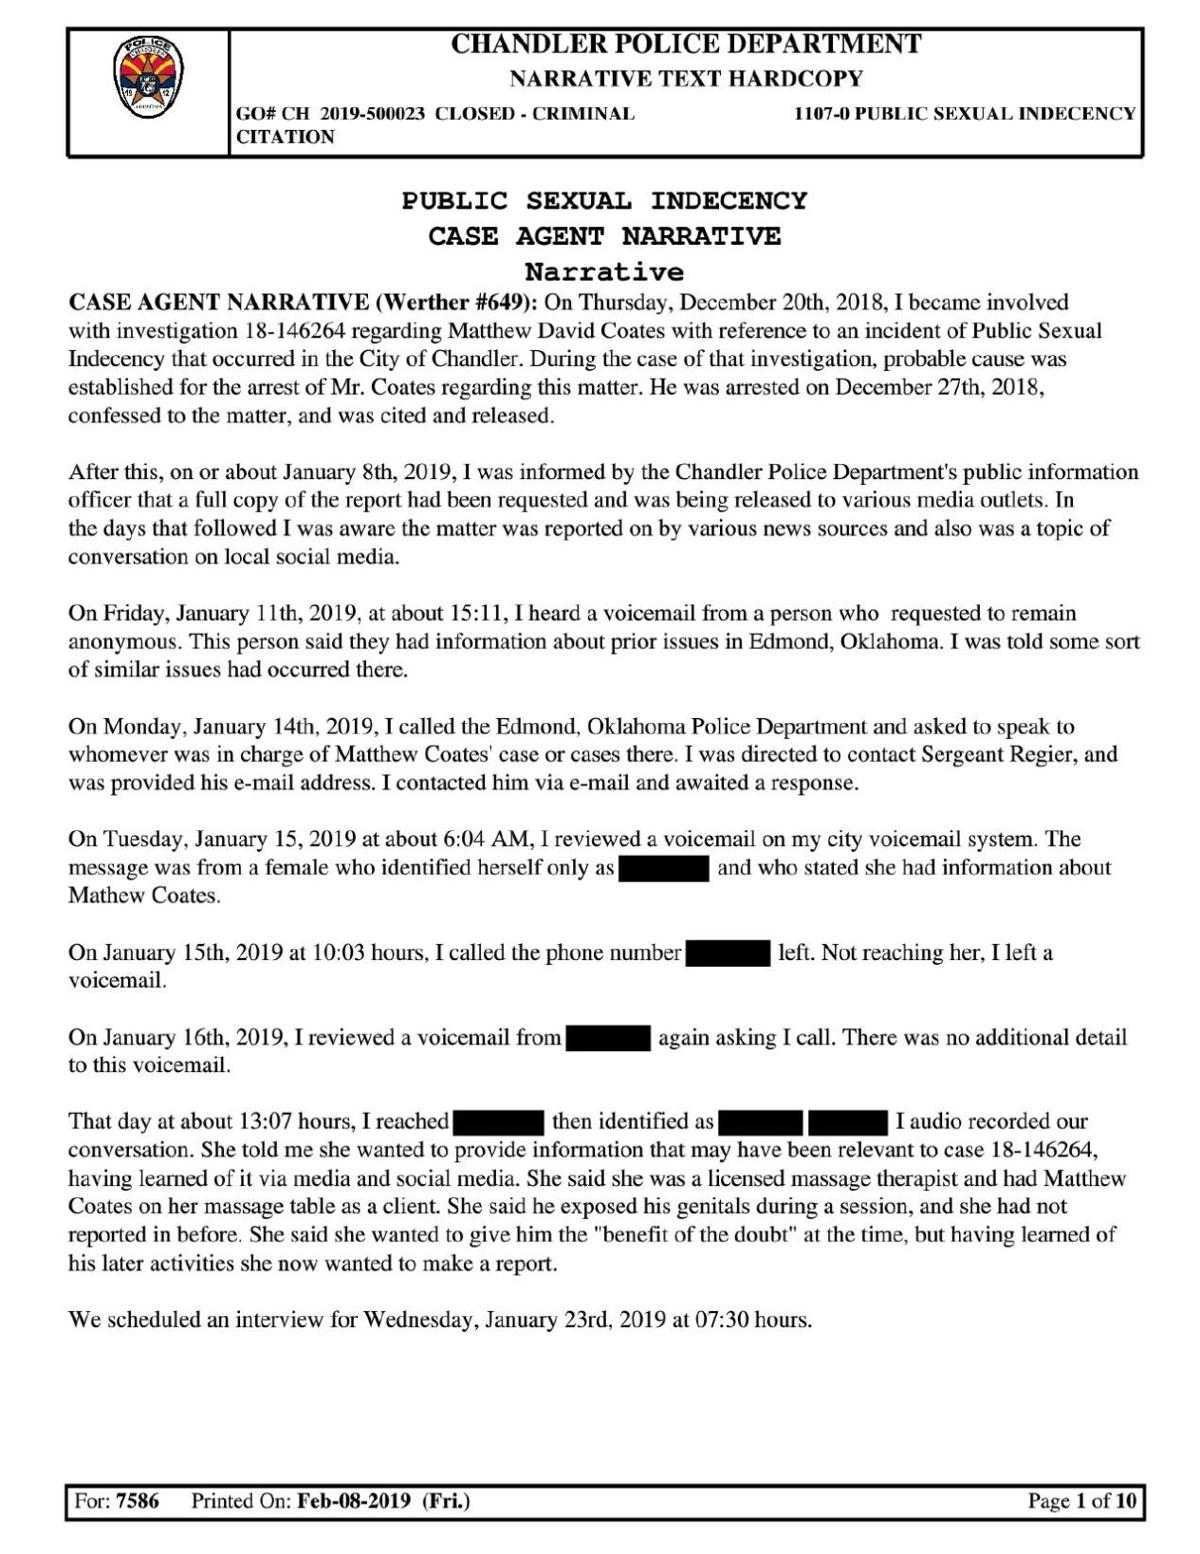 Chandler police report on Coates public indecency charge